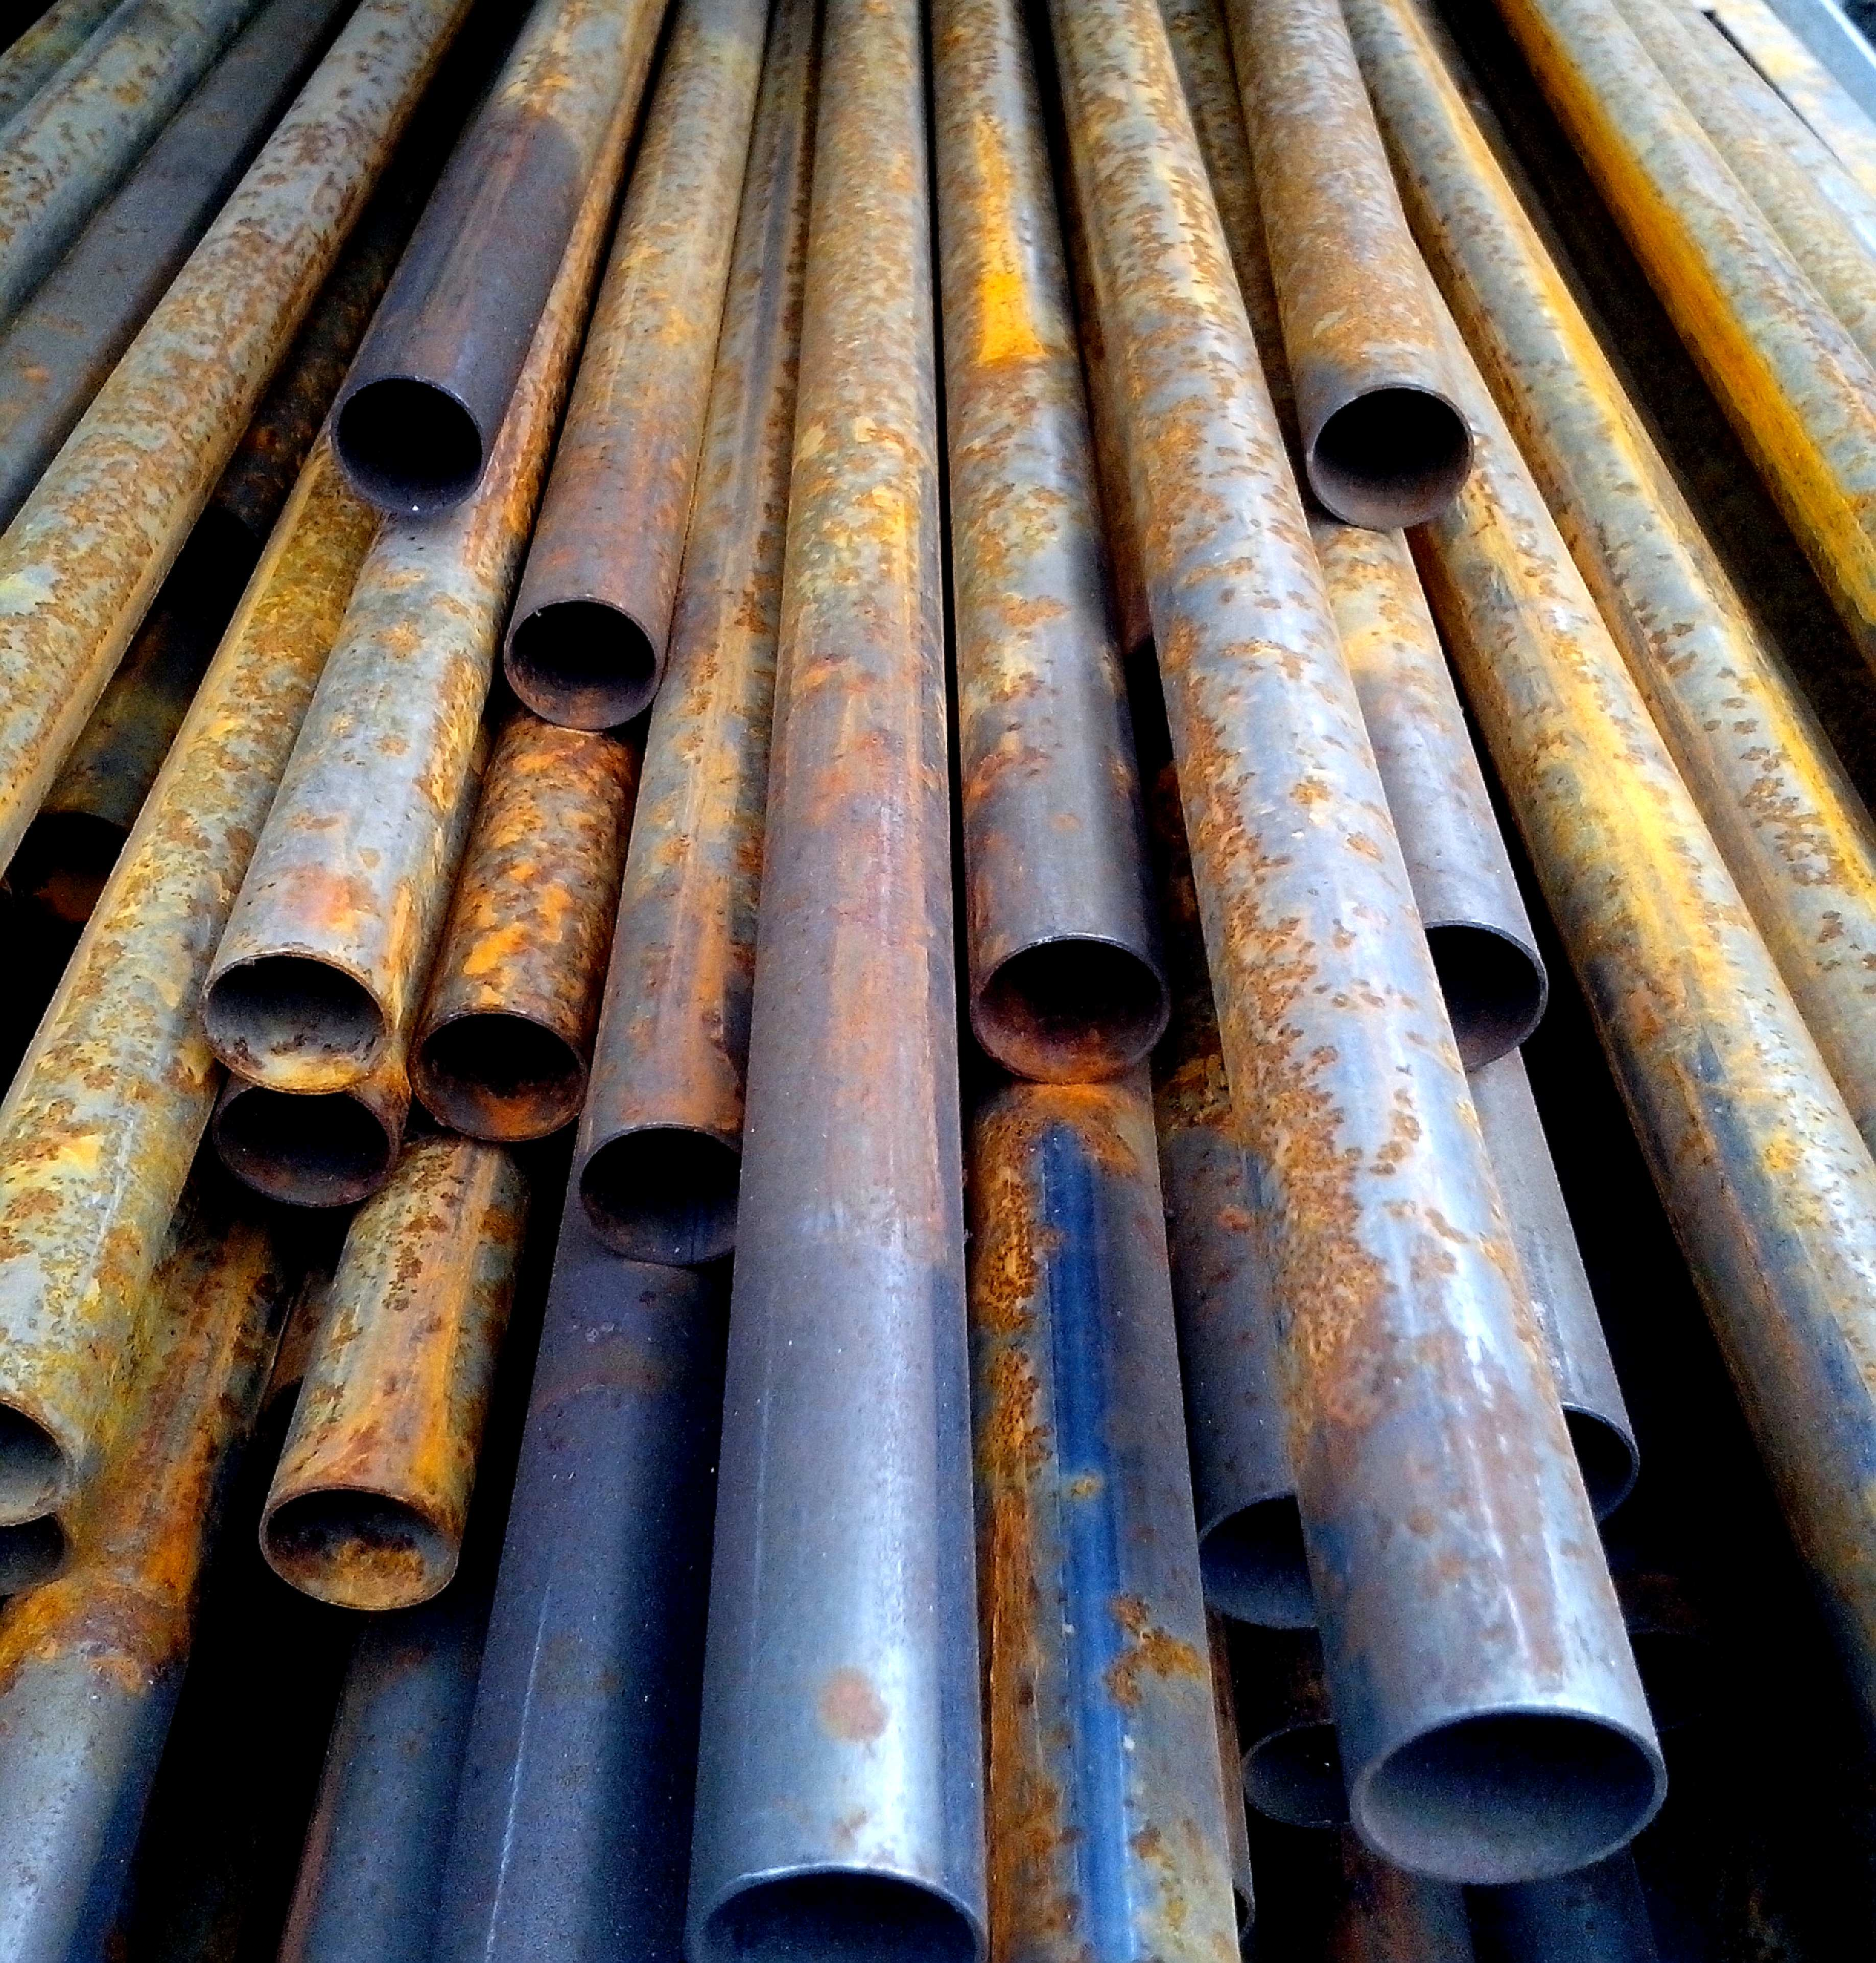 Free picture: rusty, round, metal, pipes, stacked